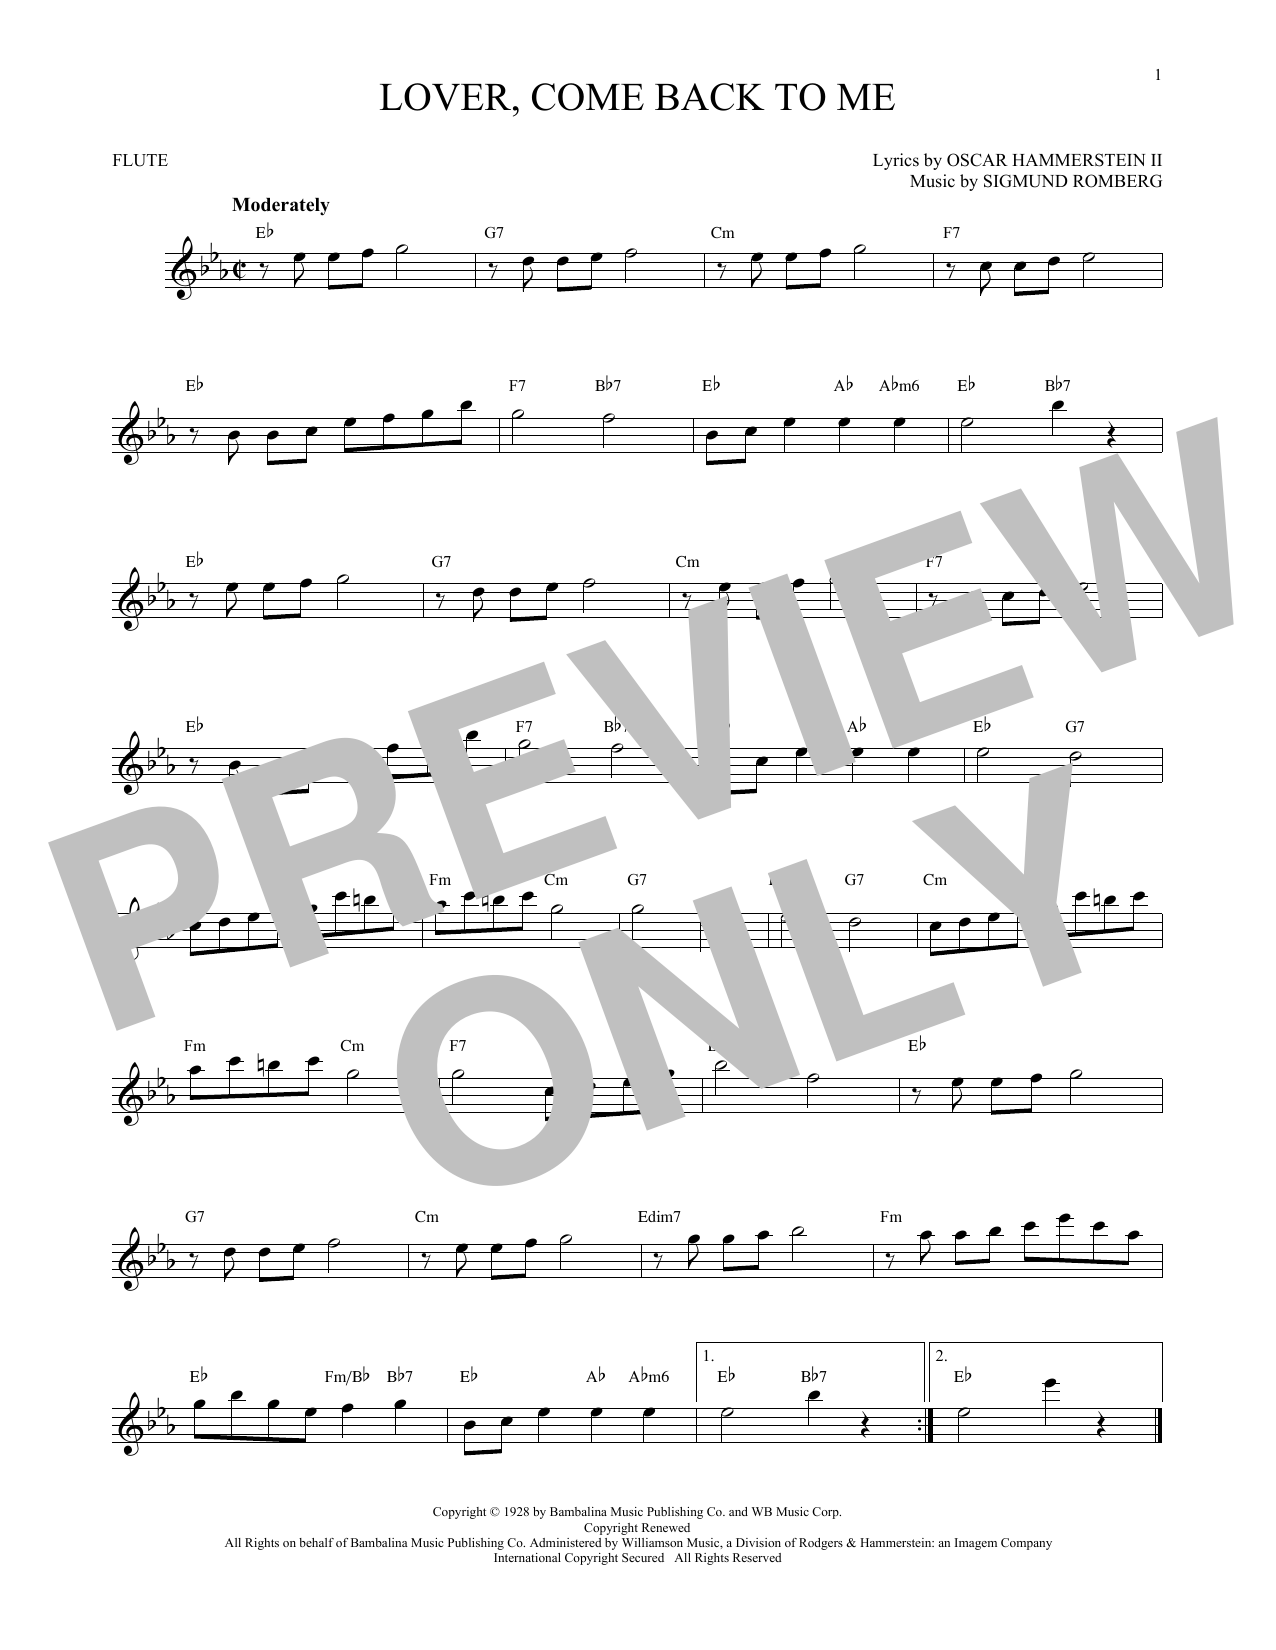 Oscar Hammerstein II Lover, Come Back To Me sheet music notes and chords. Download Printable PDF.